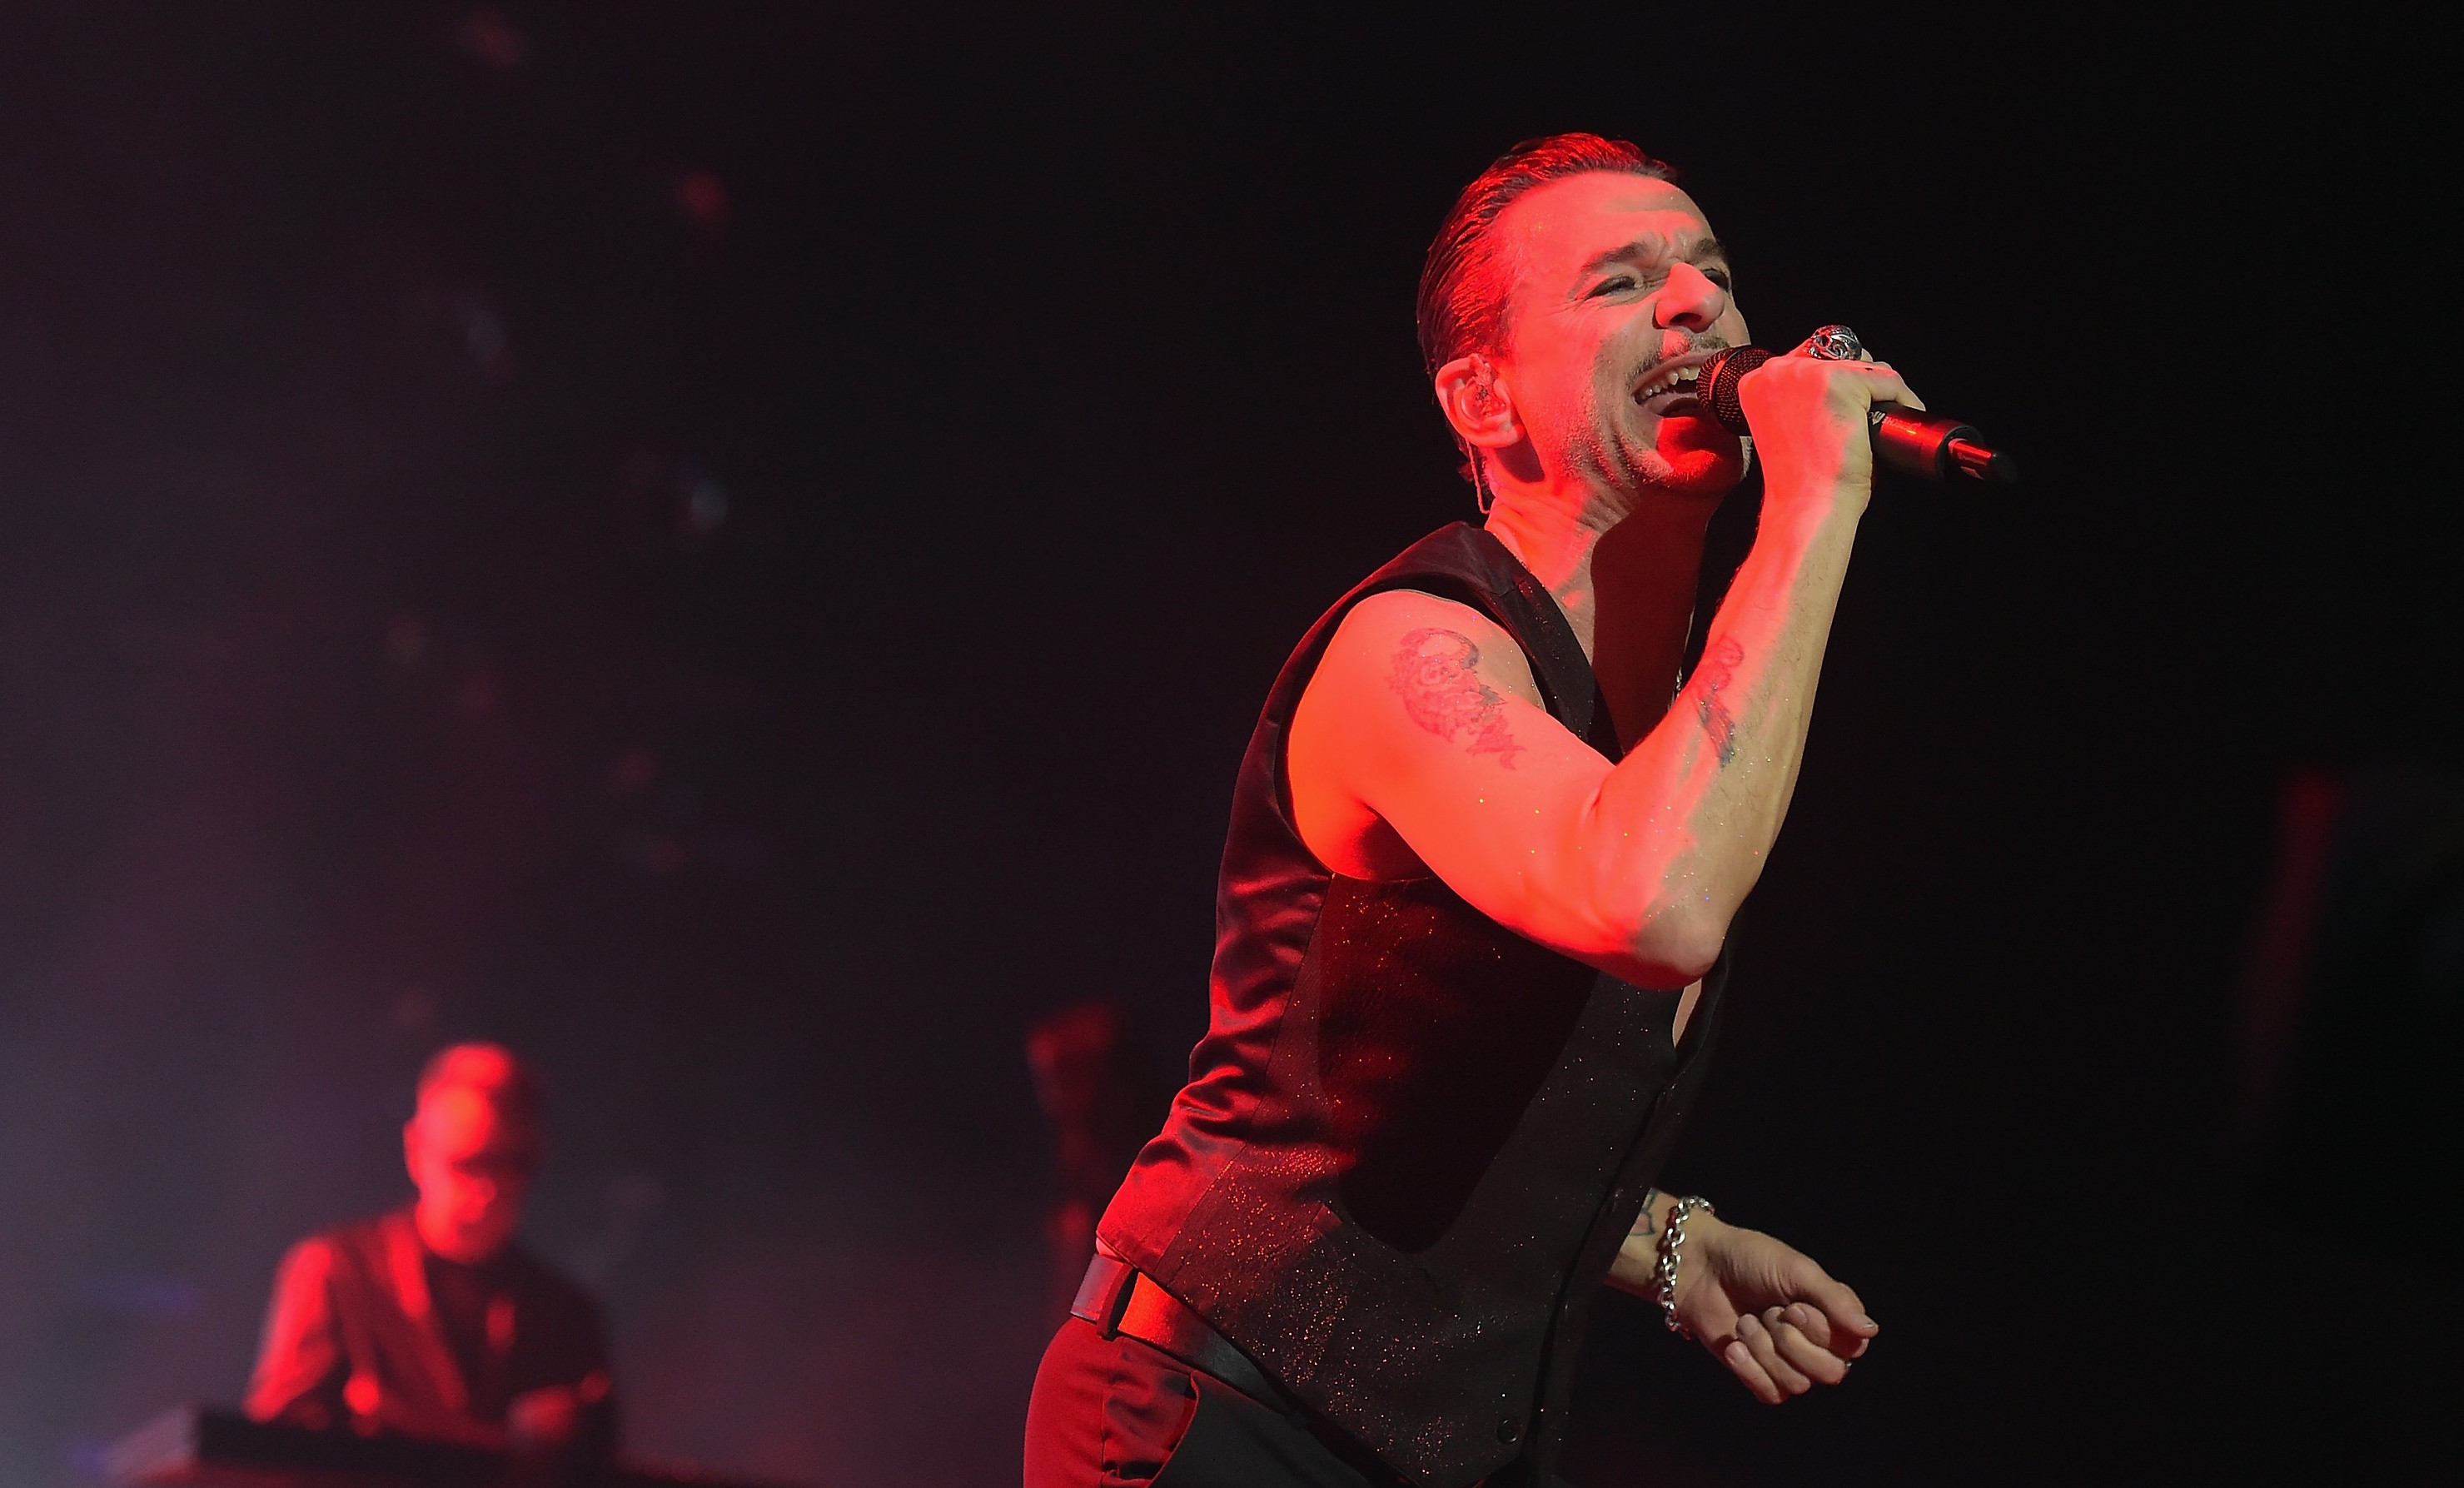 'Spirits in the Forest' Review: Anton Corbijn's Depeche Mode Concert Doc Puts the Fans First